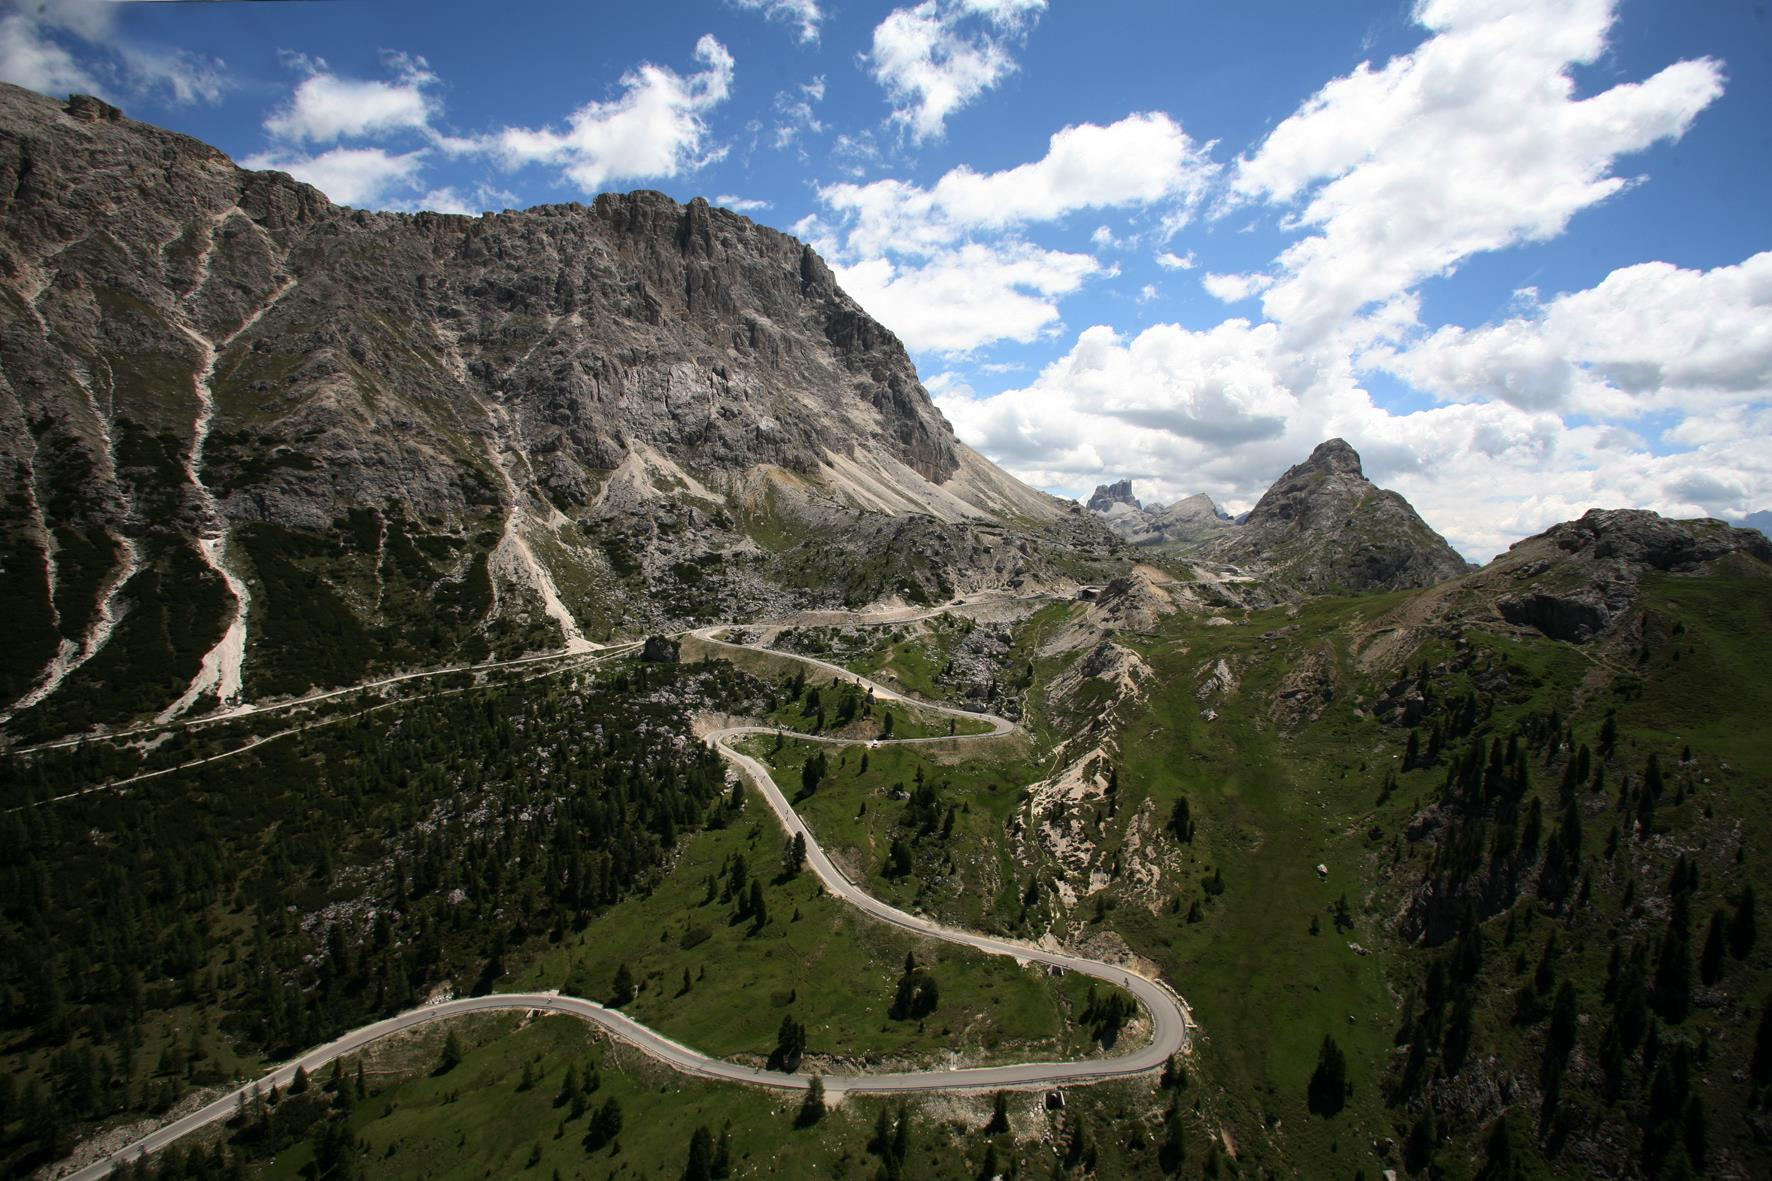 From Passo Valparola to Pralongiá and down to San Cassiano